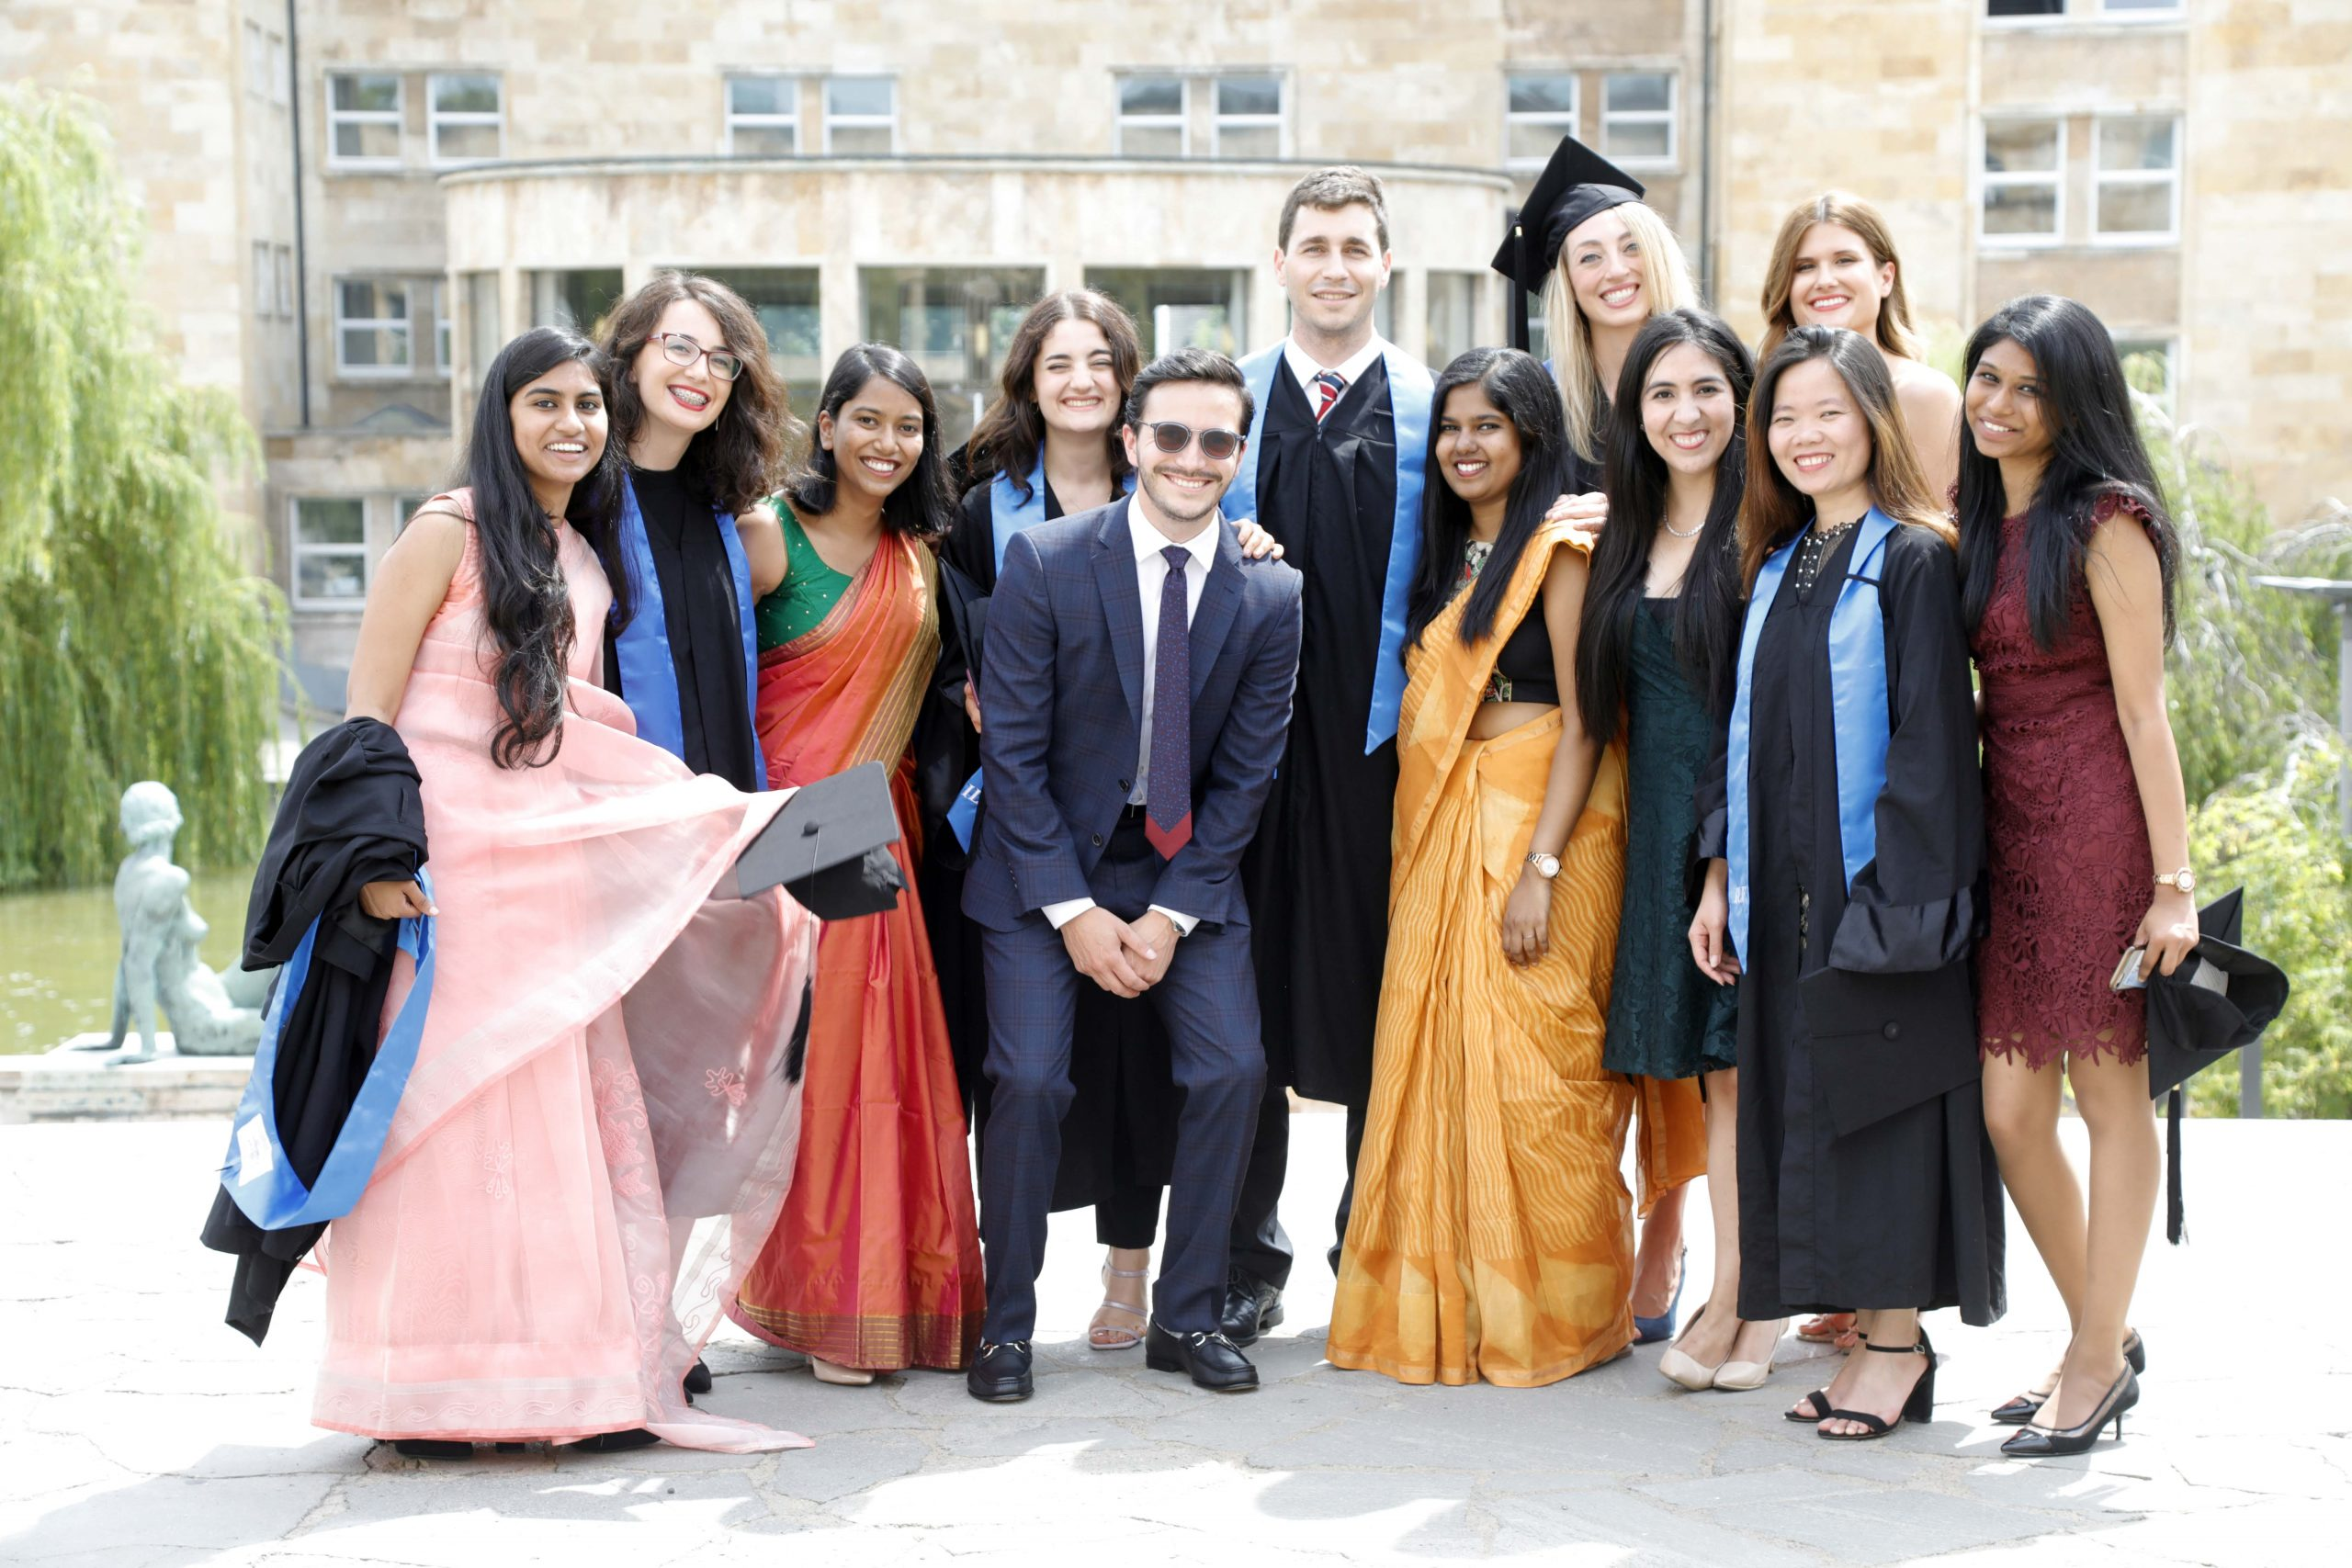 ILF students from the Class of 2019